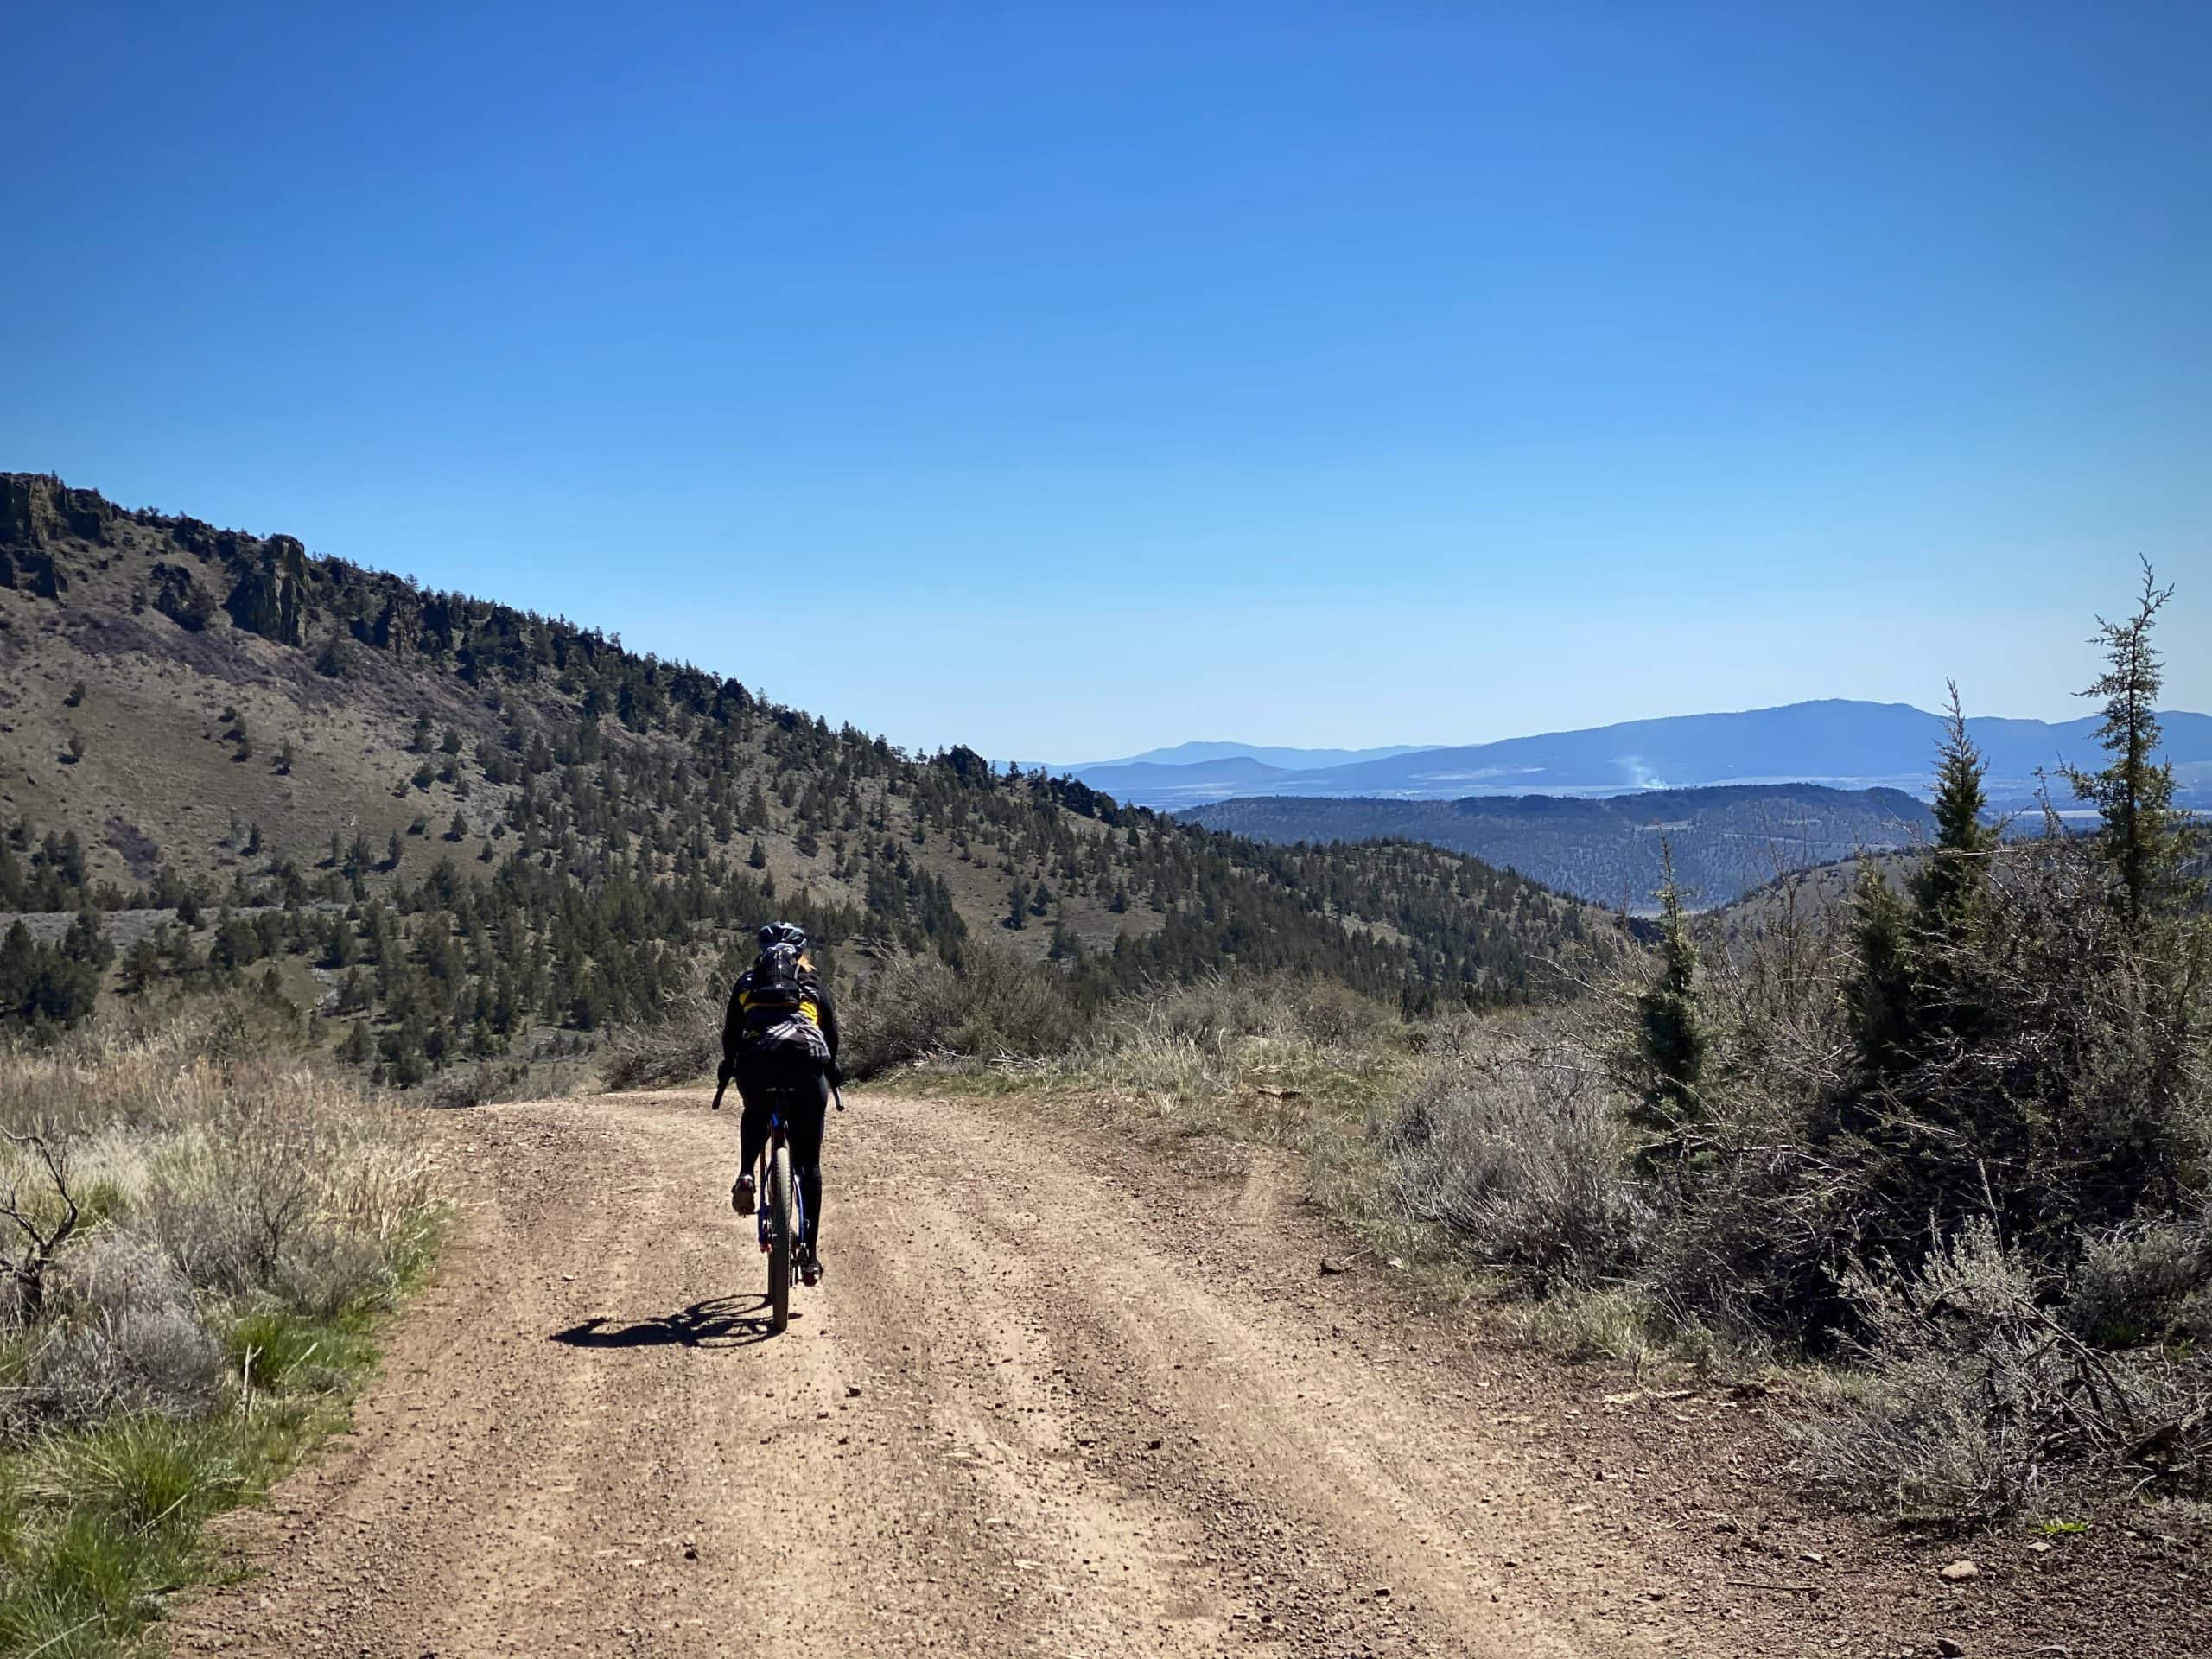 Gravel cyclist on dirt road in Crooked River National Grassland near Redmond, OR.